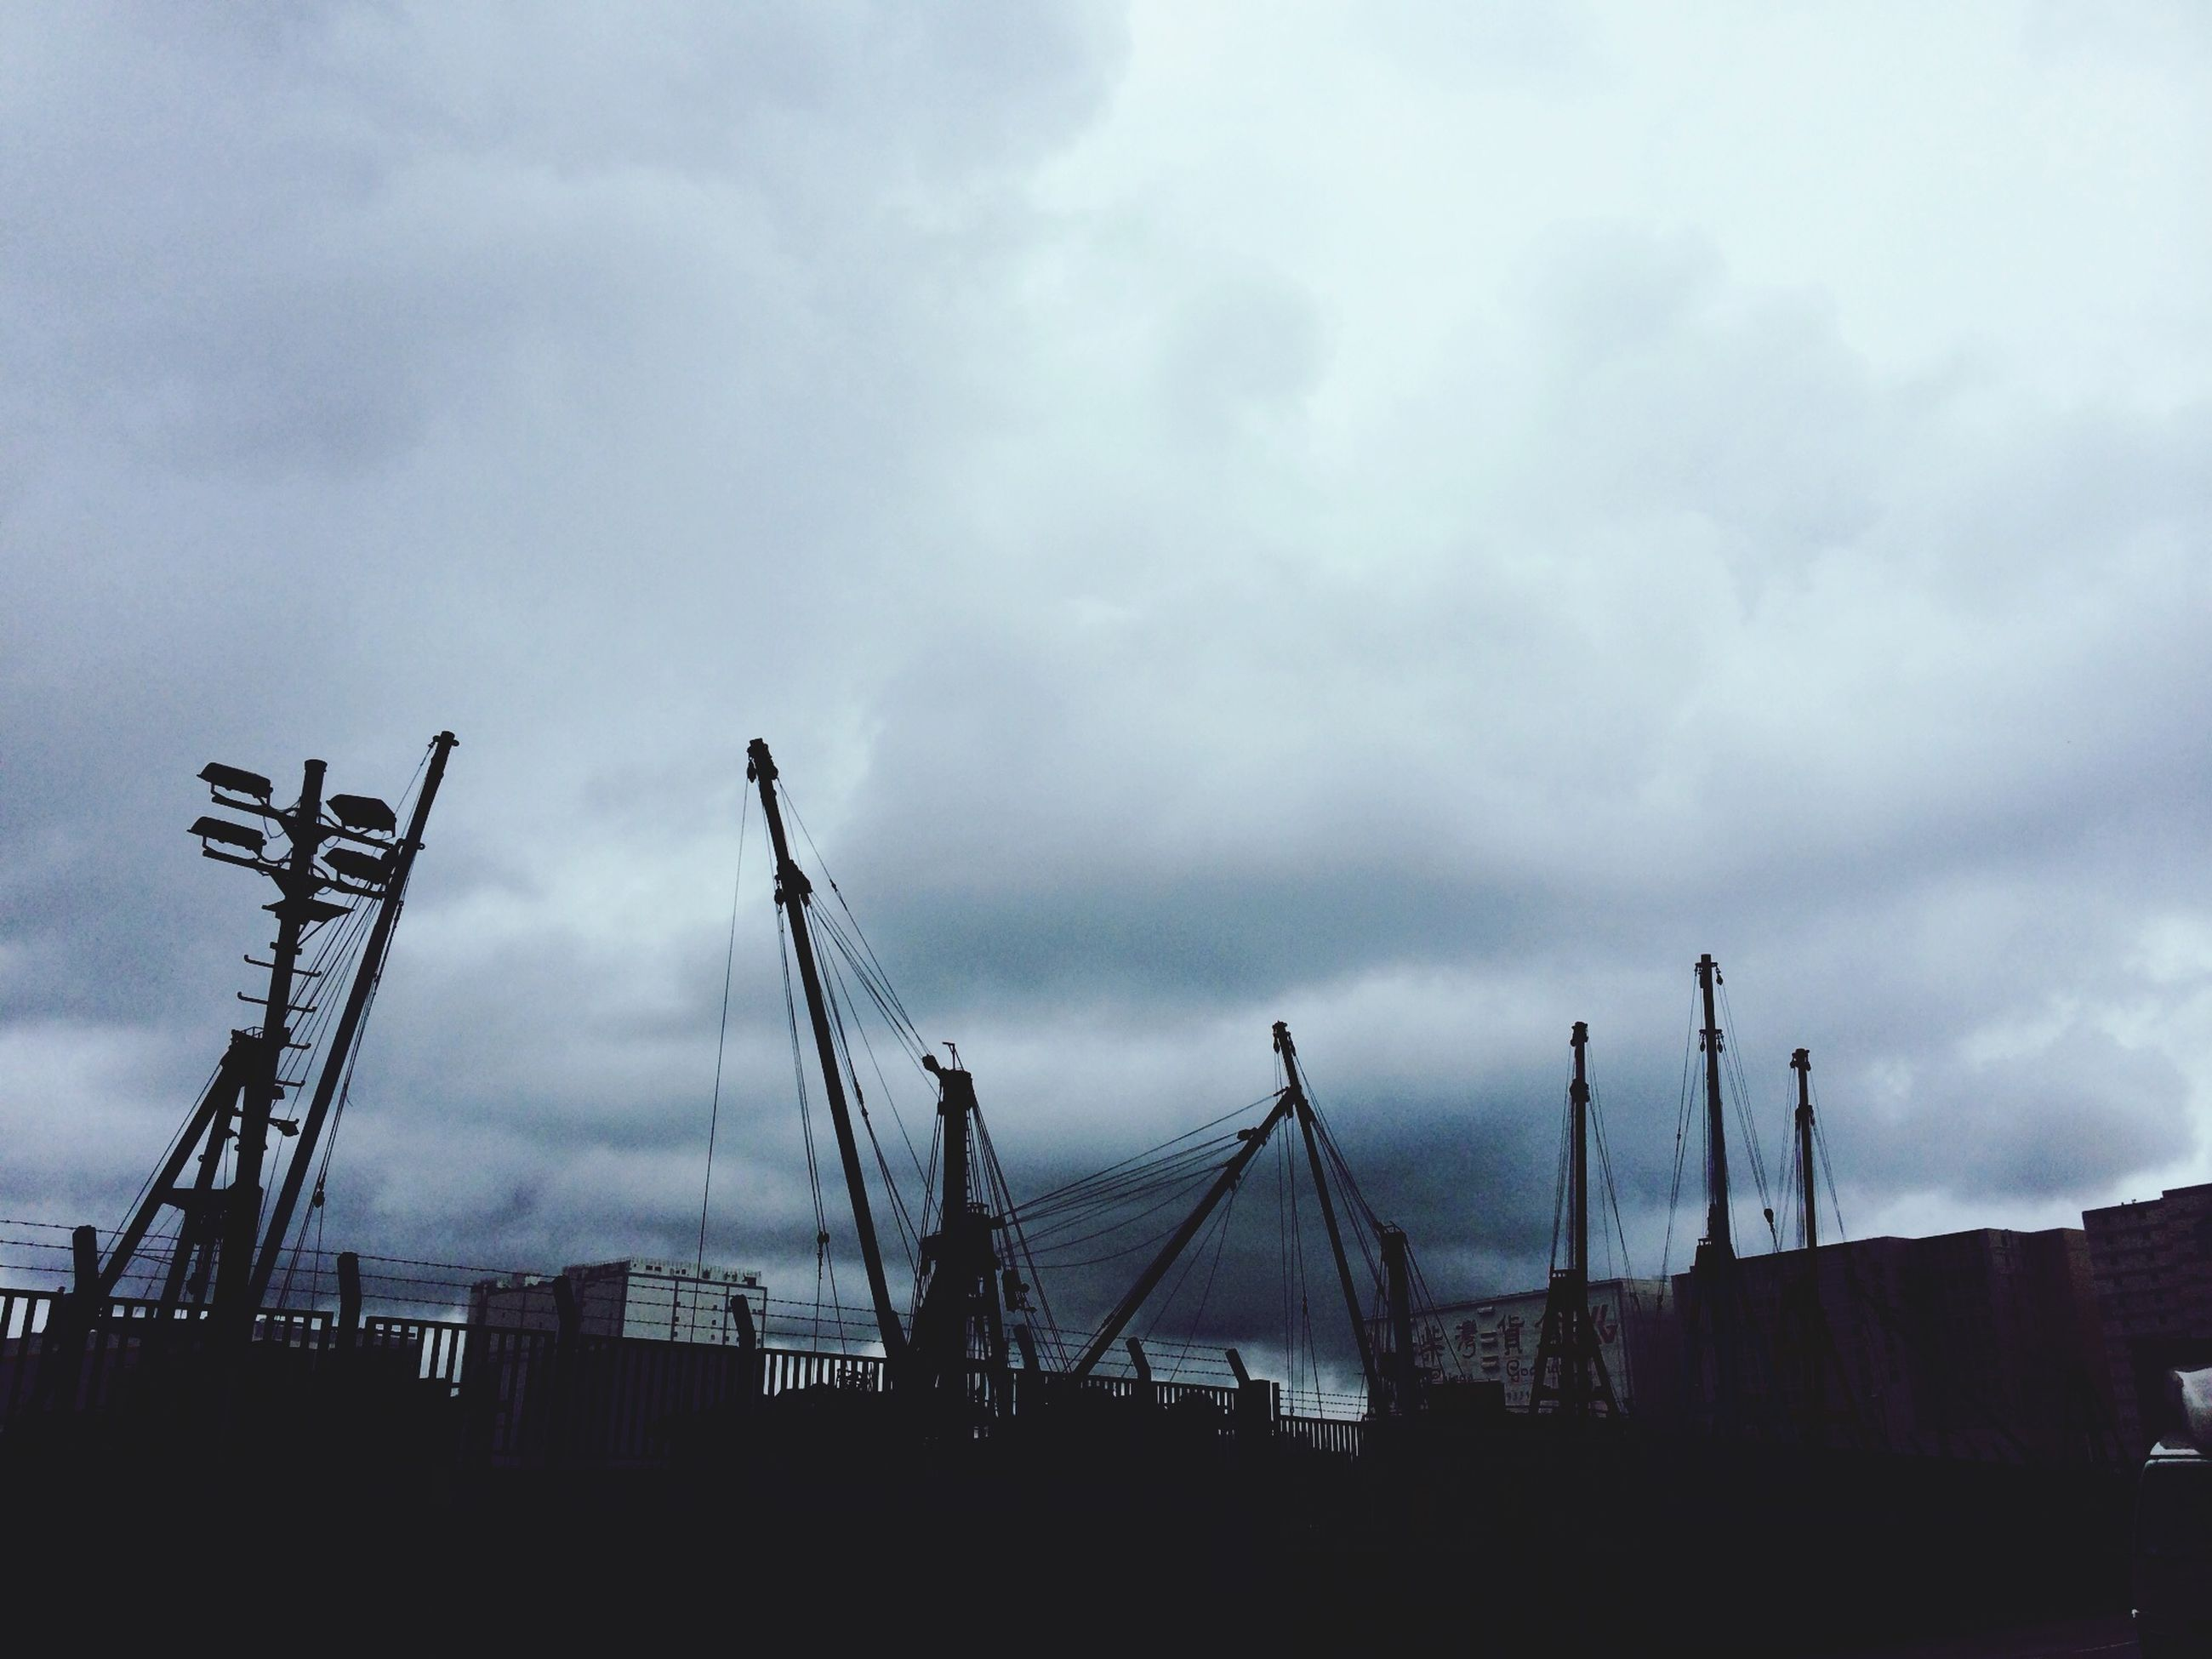 sky, building exterior, architecture, built structure, cloud - sky, low angle view, cloudy, silhouette, cloud, dusk, city, building, overcast, weather, outdoors, no people, development, residential structure, house, construction site